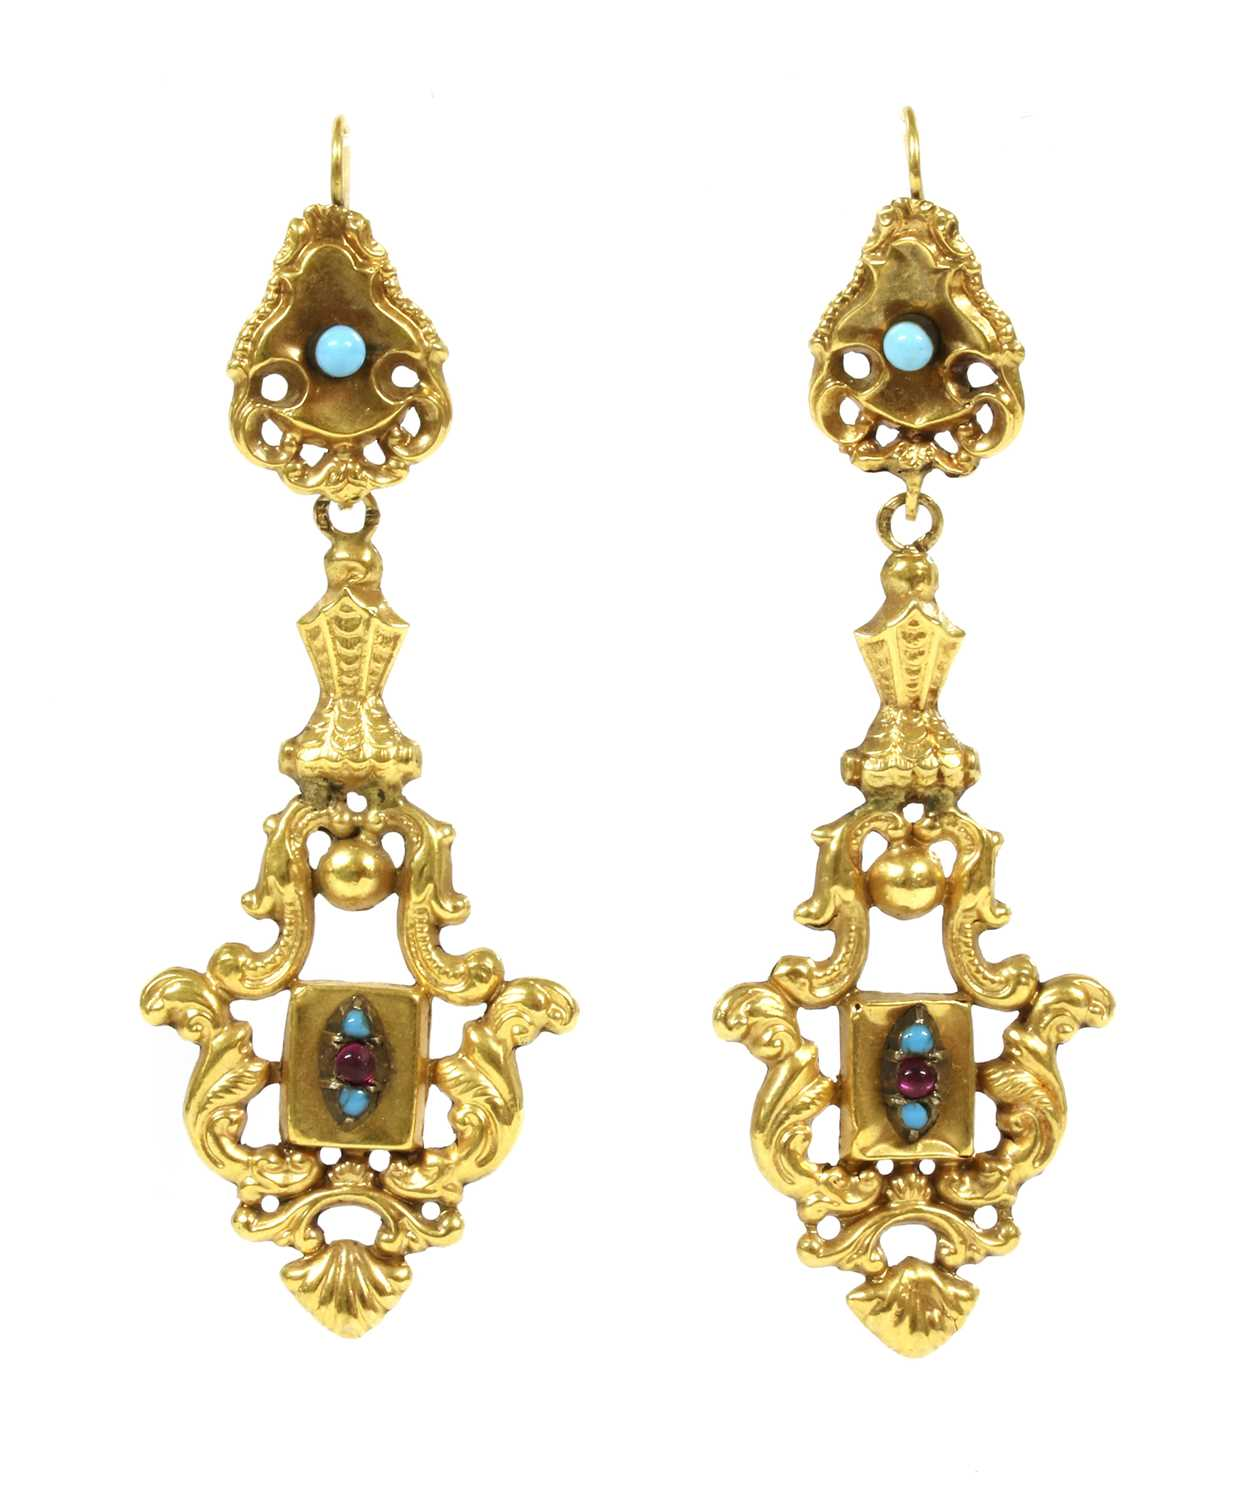 Lot 23 - A pair of early Victorian gold repoussé rococo-style drop earrings